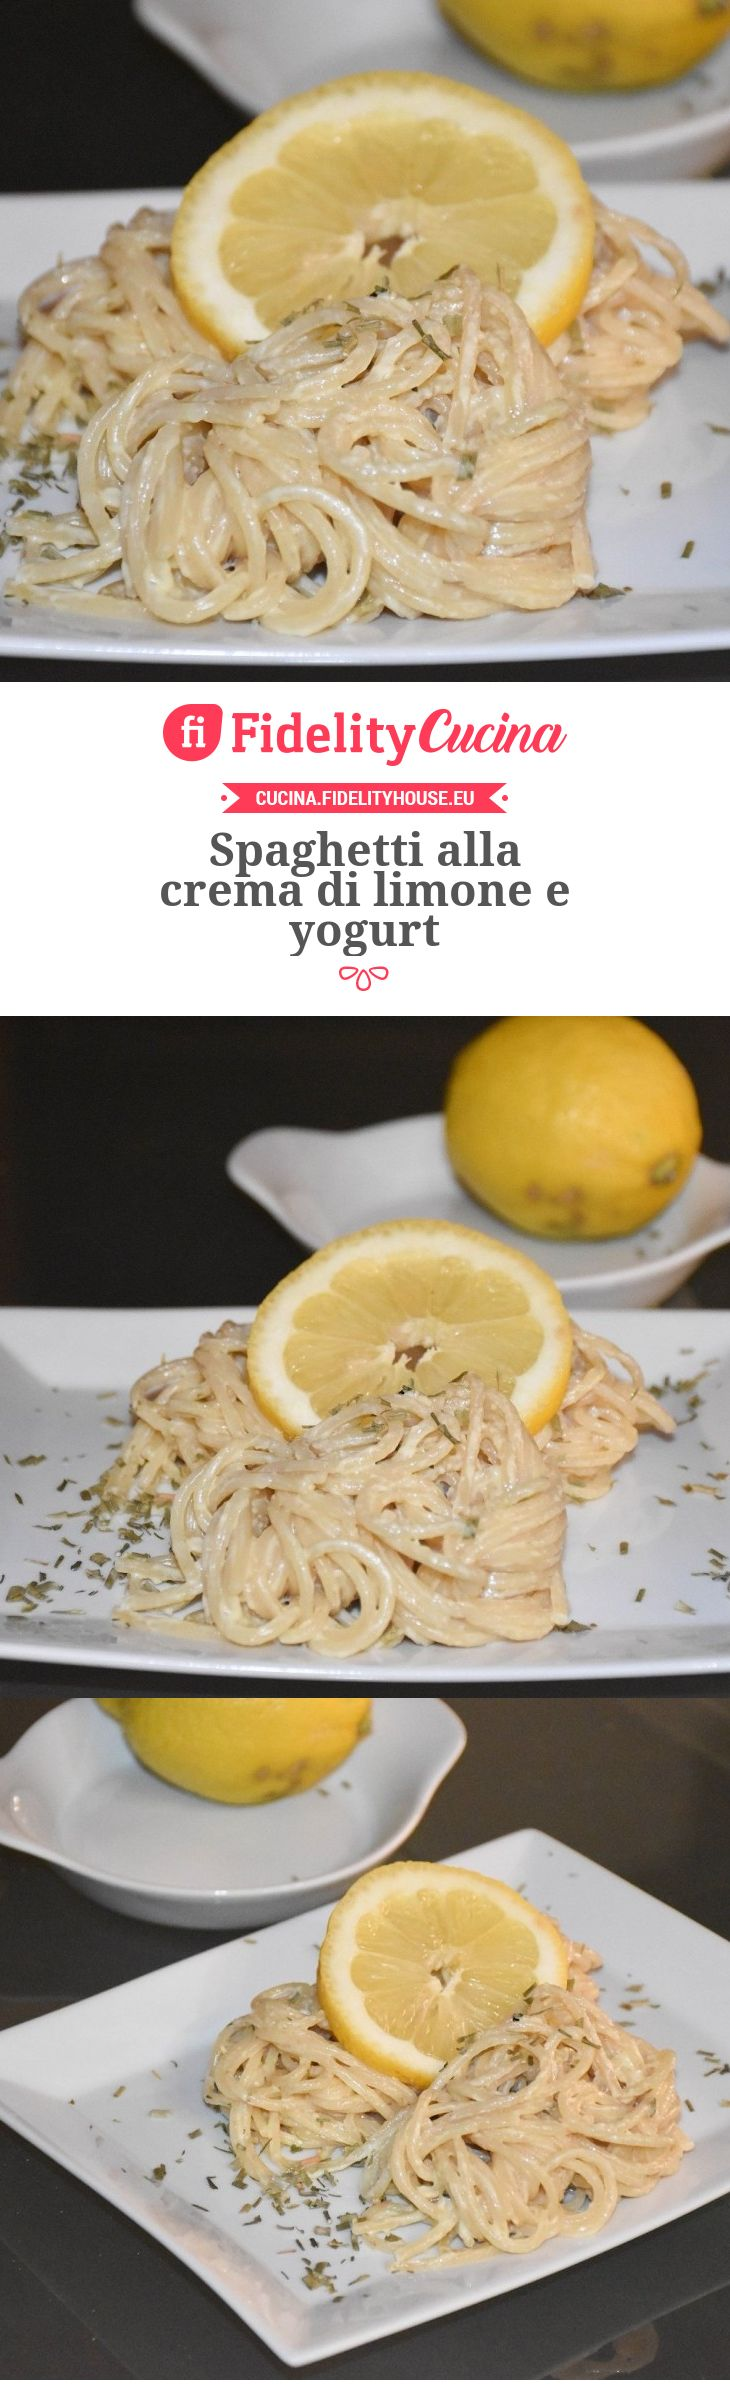 Spaghetti alla crema di limone e yogurt